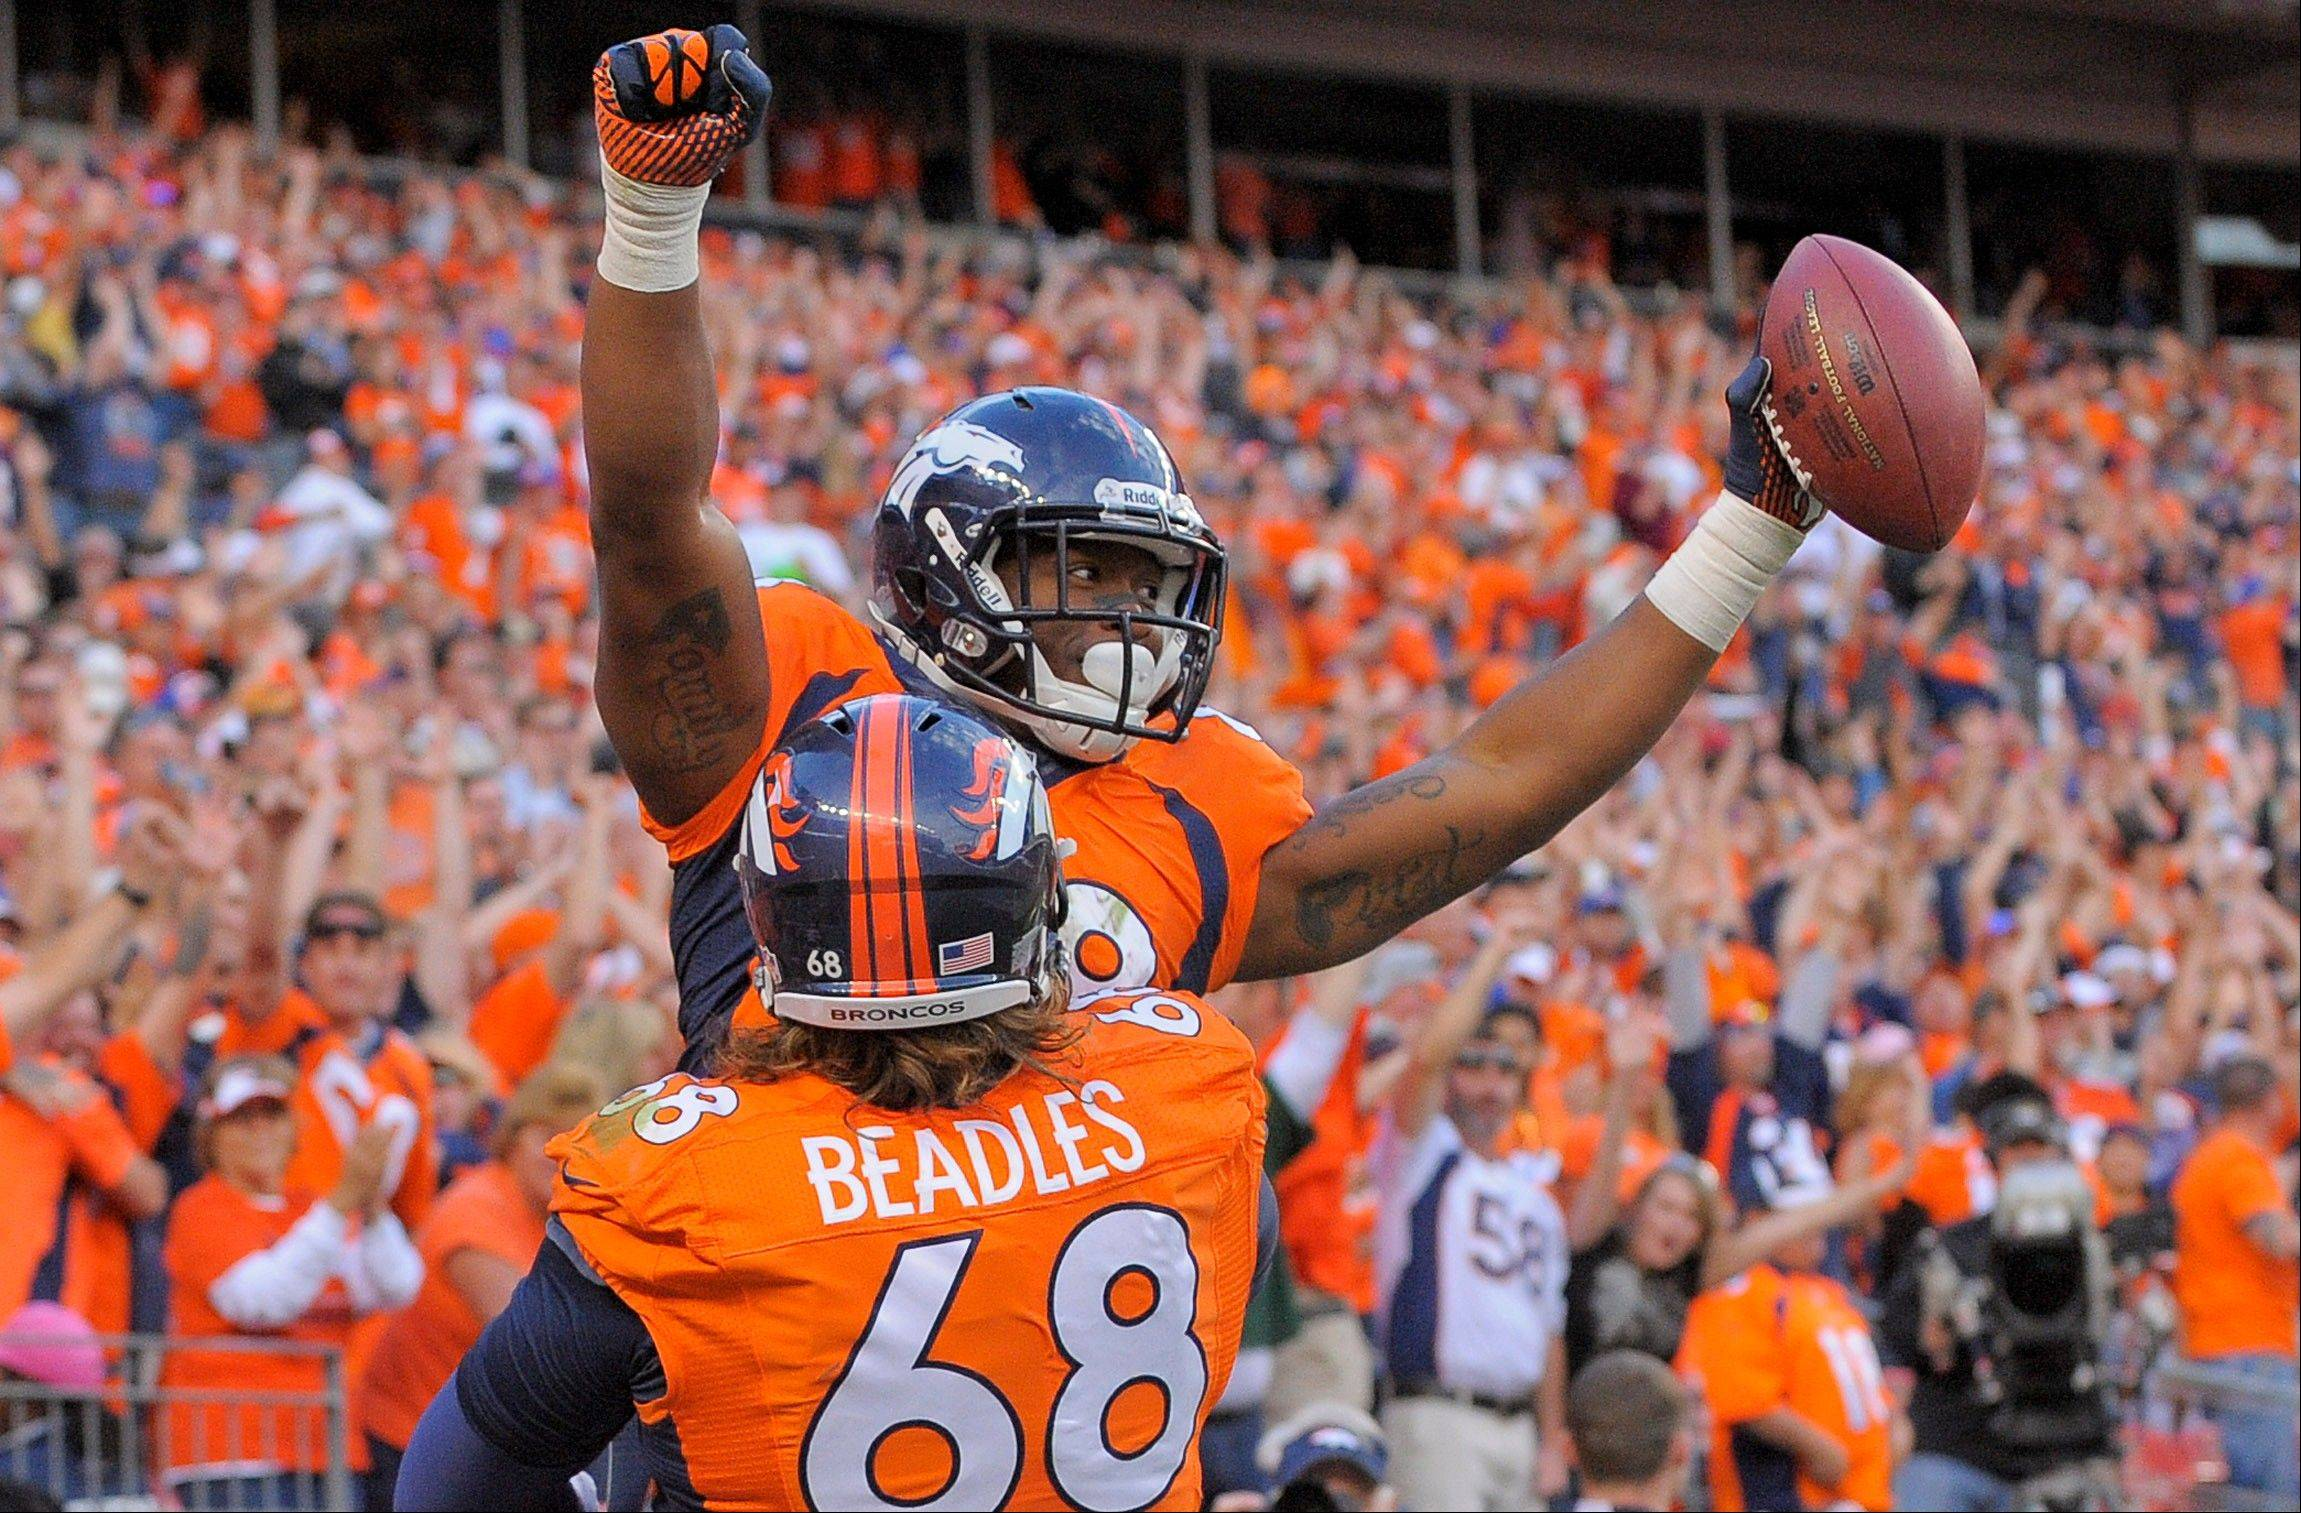 Denver Broncos wide receiver Demaryius Thomas (88) celebrates with guard Zane Beadles (68) after scoring a touchdown against Washington in the fourth quarter.